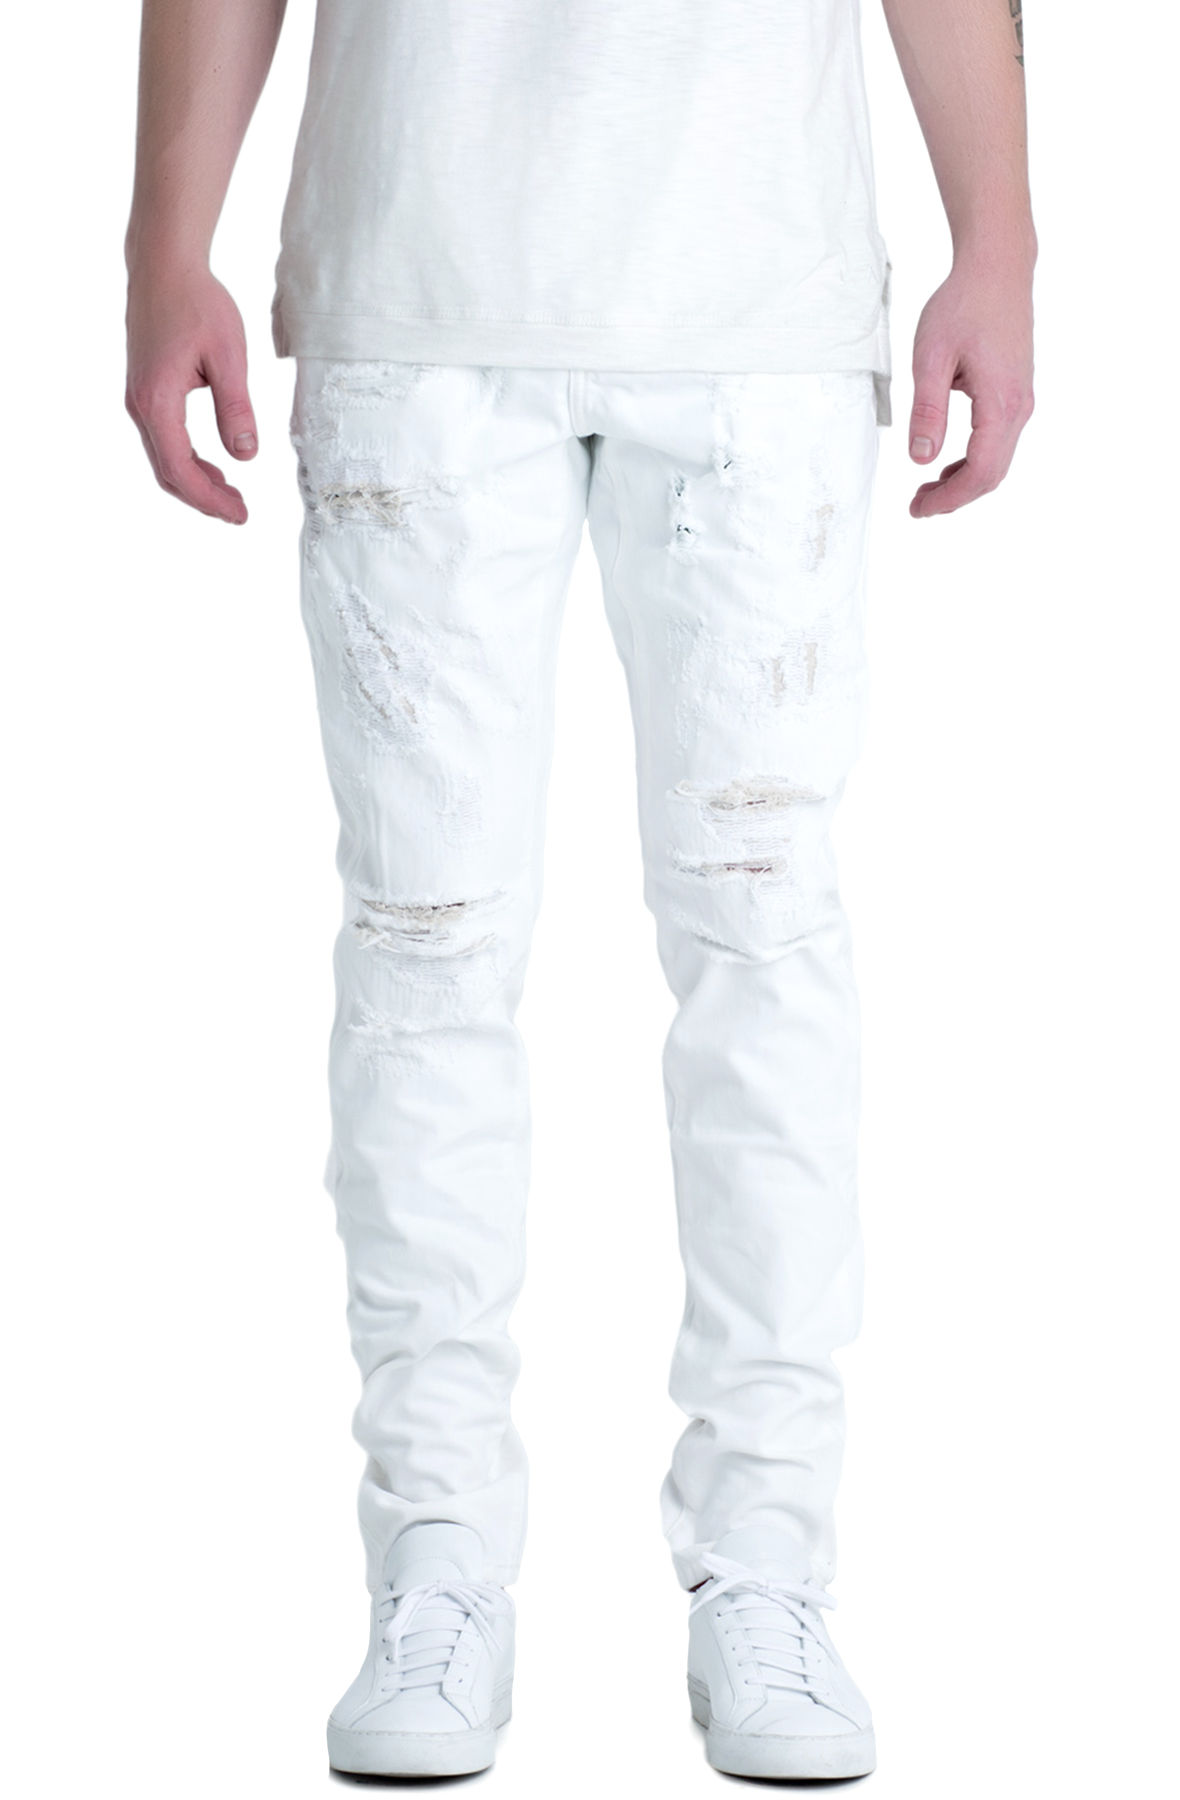 Image of The Ramirez Distressed Denim Jeans in White